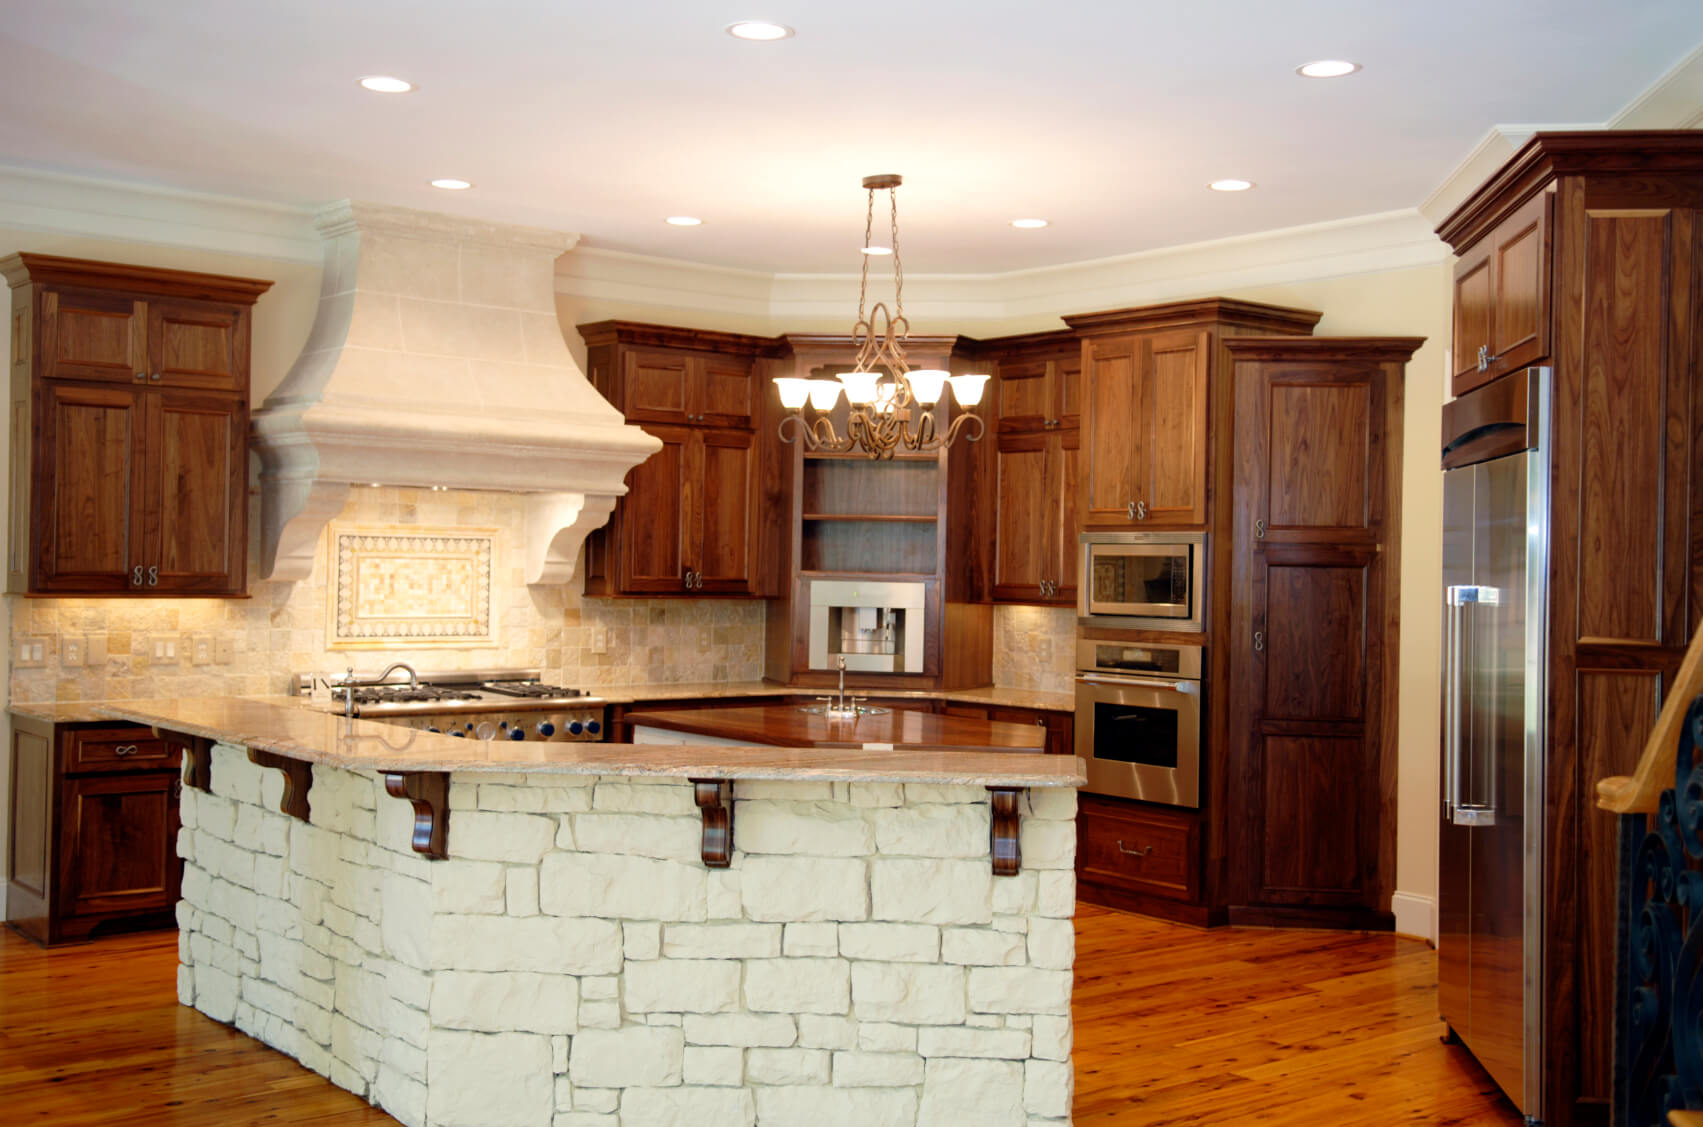 84 custom luxury kitchen island ideas designs pictures for Stone kitchen island